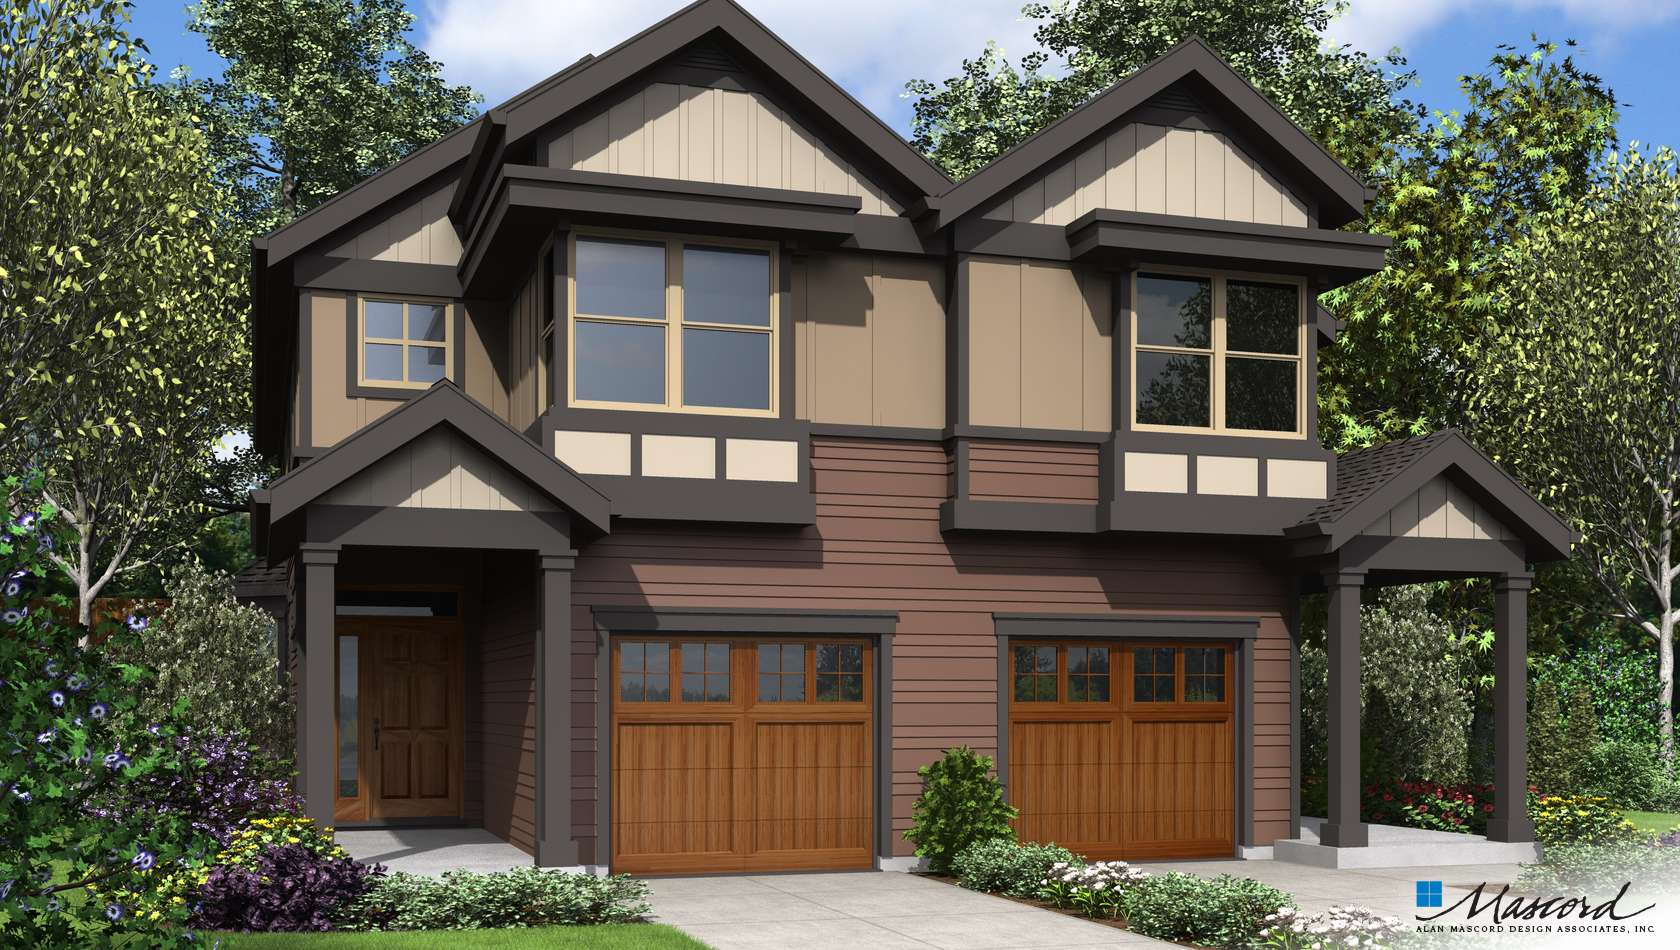 Main image for house plan 4045: The Cascades